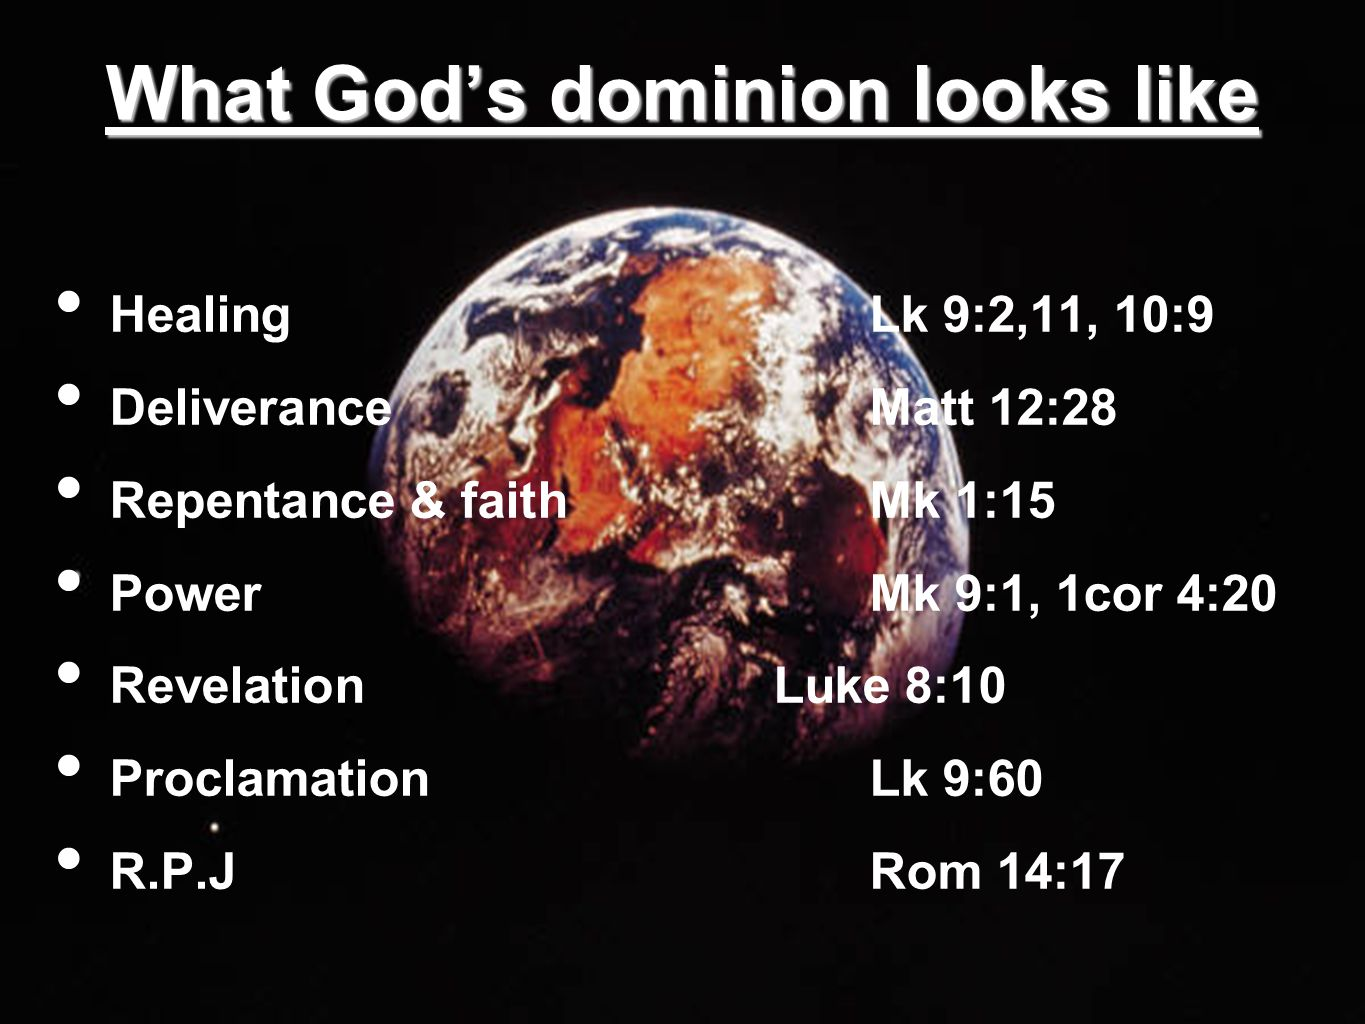 What God's dominion looks like